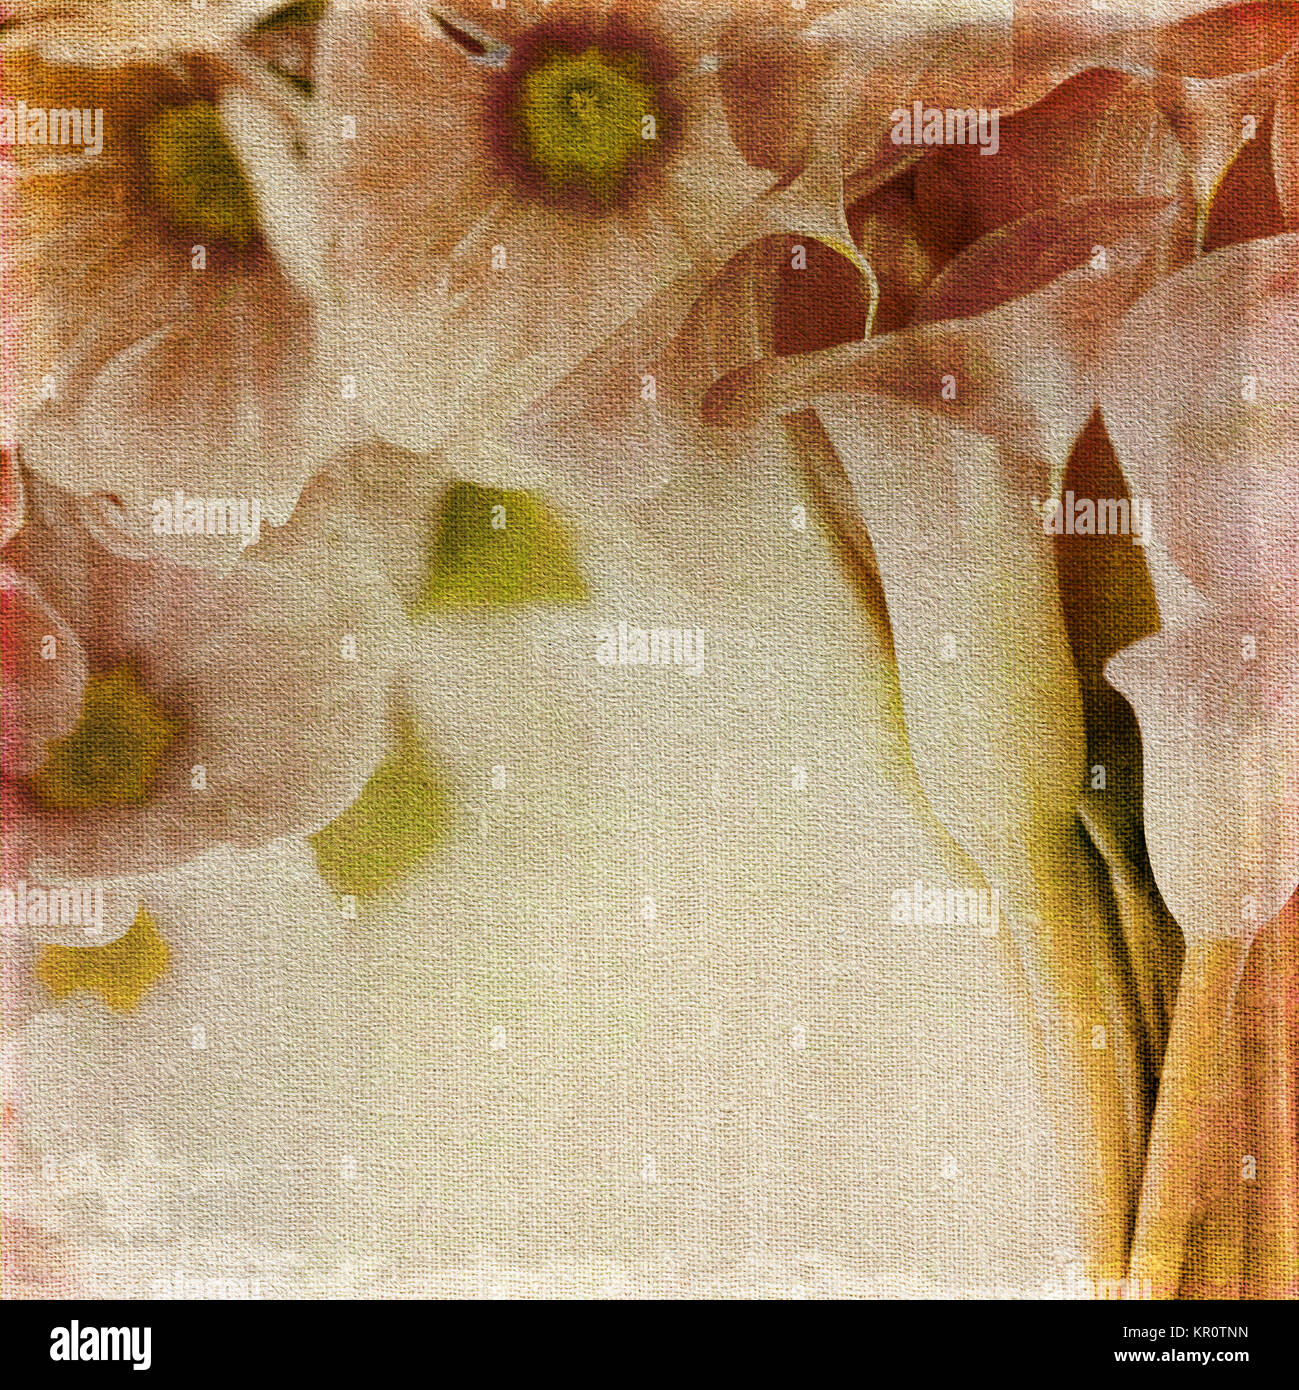 Old canvas background with floral print. - Stock Image